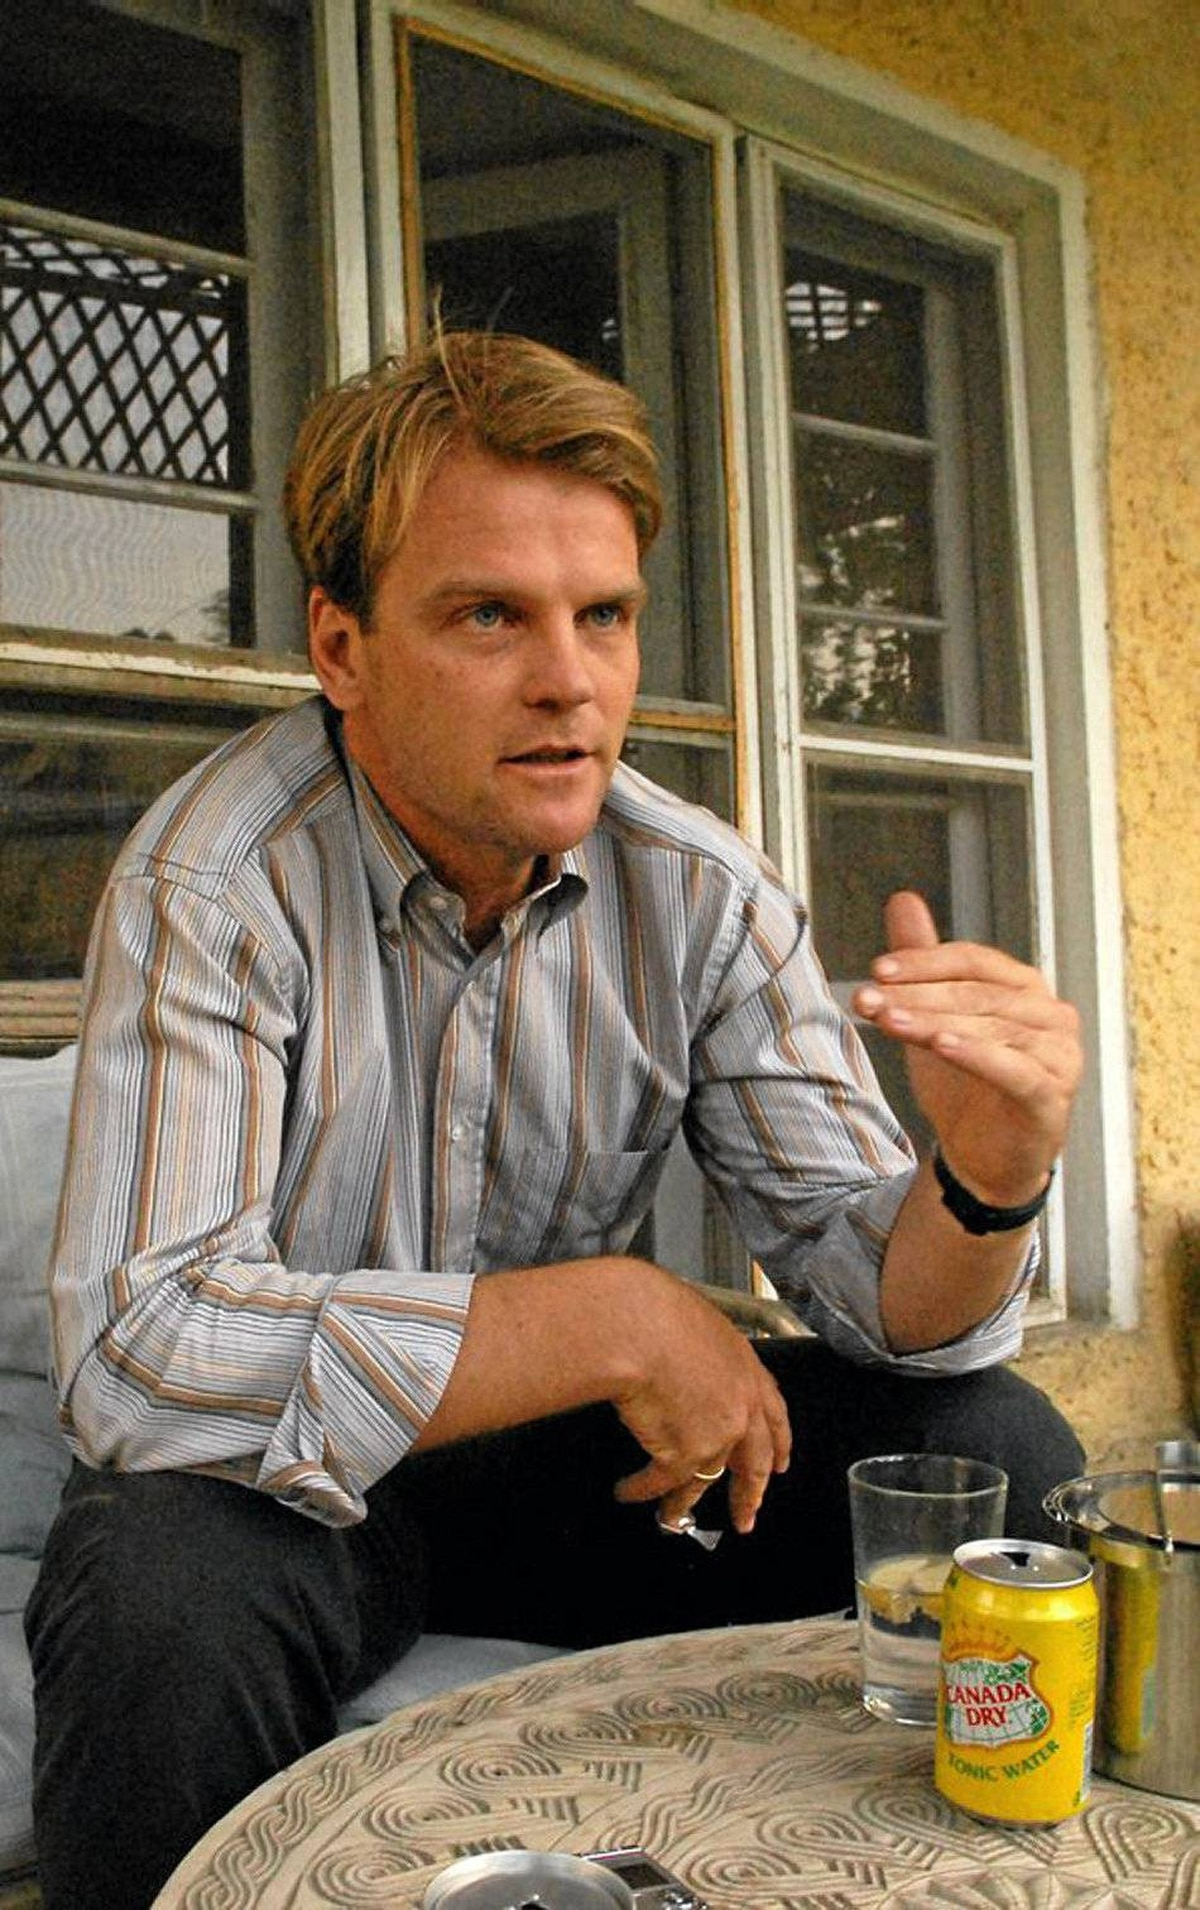 """THE FOREIGN AFFAIRS GOLDEN BOY Chris Alexander; Conservative; Ajax-Pickering Chris Alexander was a Tory star candidate from Day One. How could he not be? He had been Canada's ambassador to both the United Nations and Afghanistan; he told stories of having driven with his wife Hedvig from Kabul to Moscow – """"the kind of trip you wouldn't do if you knew what it was like."""" The graduate of Oxford and University of Toronto Schools came back after spending years abroad – but instead of being dismissed as a carpetbagger, on Monday he wrested Ajax-Pickering from Liberal incumbent Mark Holland, taking 44 per cent of the vote. While the 42-year-old father was declining interviews Tuesday, many have him pegged as the next foreign minister – especially because the Tories' former foreign minister Lawrence Cannon lost his Pontiac seat to NDP challenger Mathieu Ravignat."""